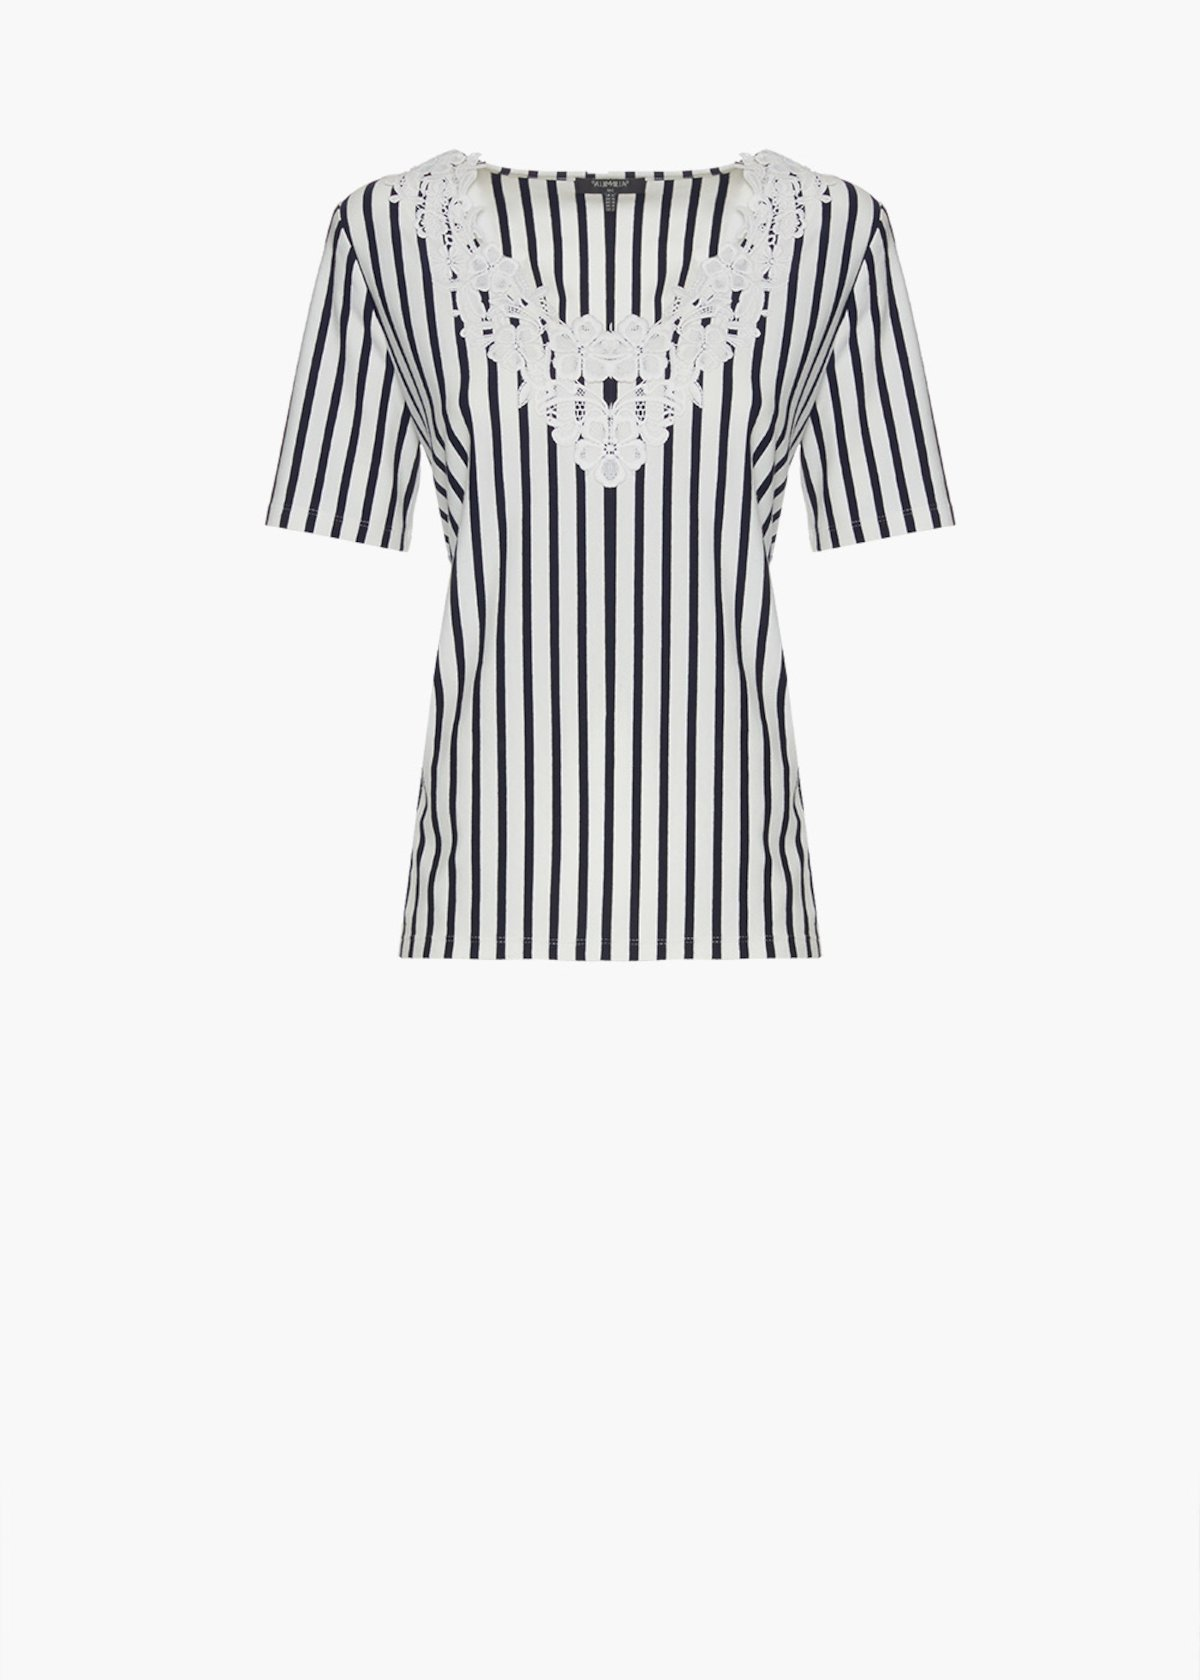 Shiny stripes fantasy t-shirt with flower embroidery at the neckline - Blue / White Stripes - Woman